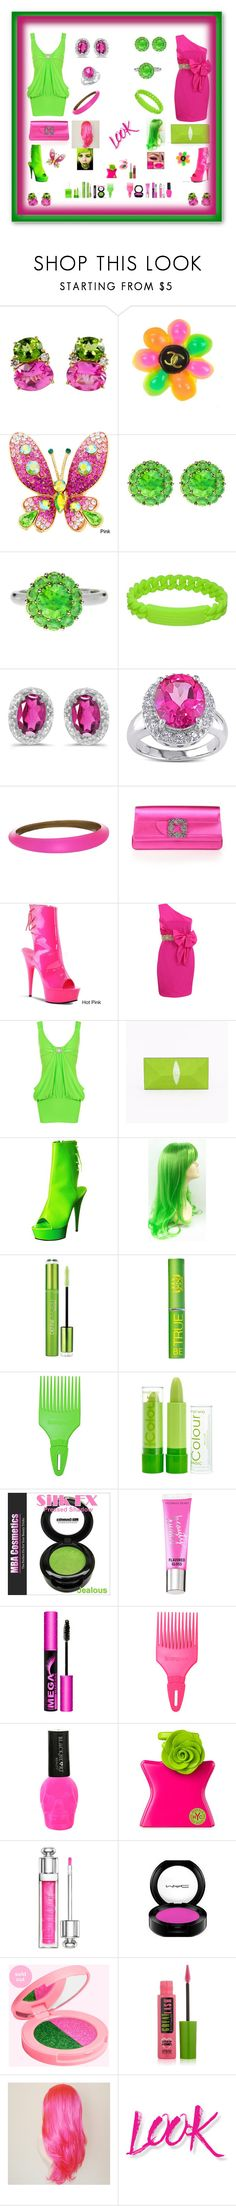 """""""Dress up Styled Neon"""" by mcronald-denise ❤ liked on Polyvore featuring Christina Addison, Chanel, Color My Life, Marc by Marc Jacobs, BillyTheTree, Miadora, Alexis Bittar, Manolo Blahnik, Notte by Marchesa and WearAll"""